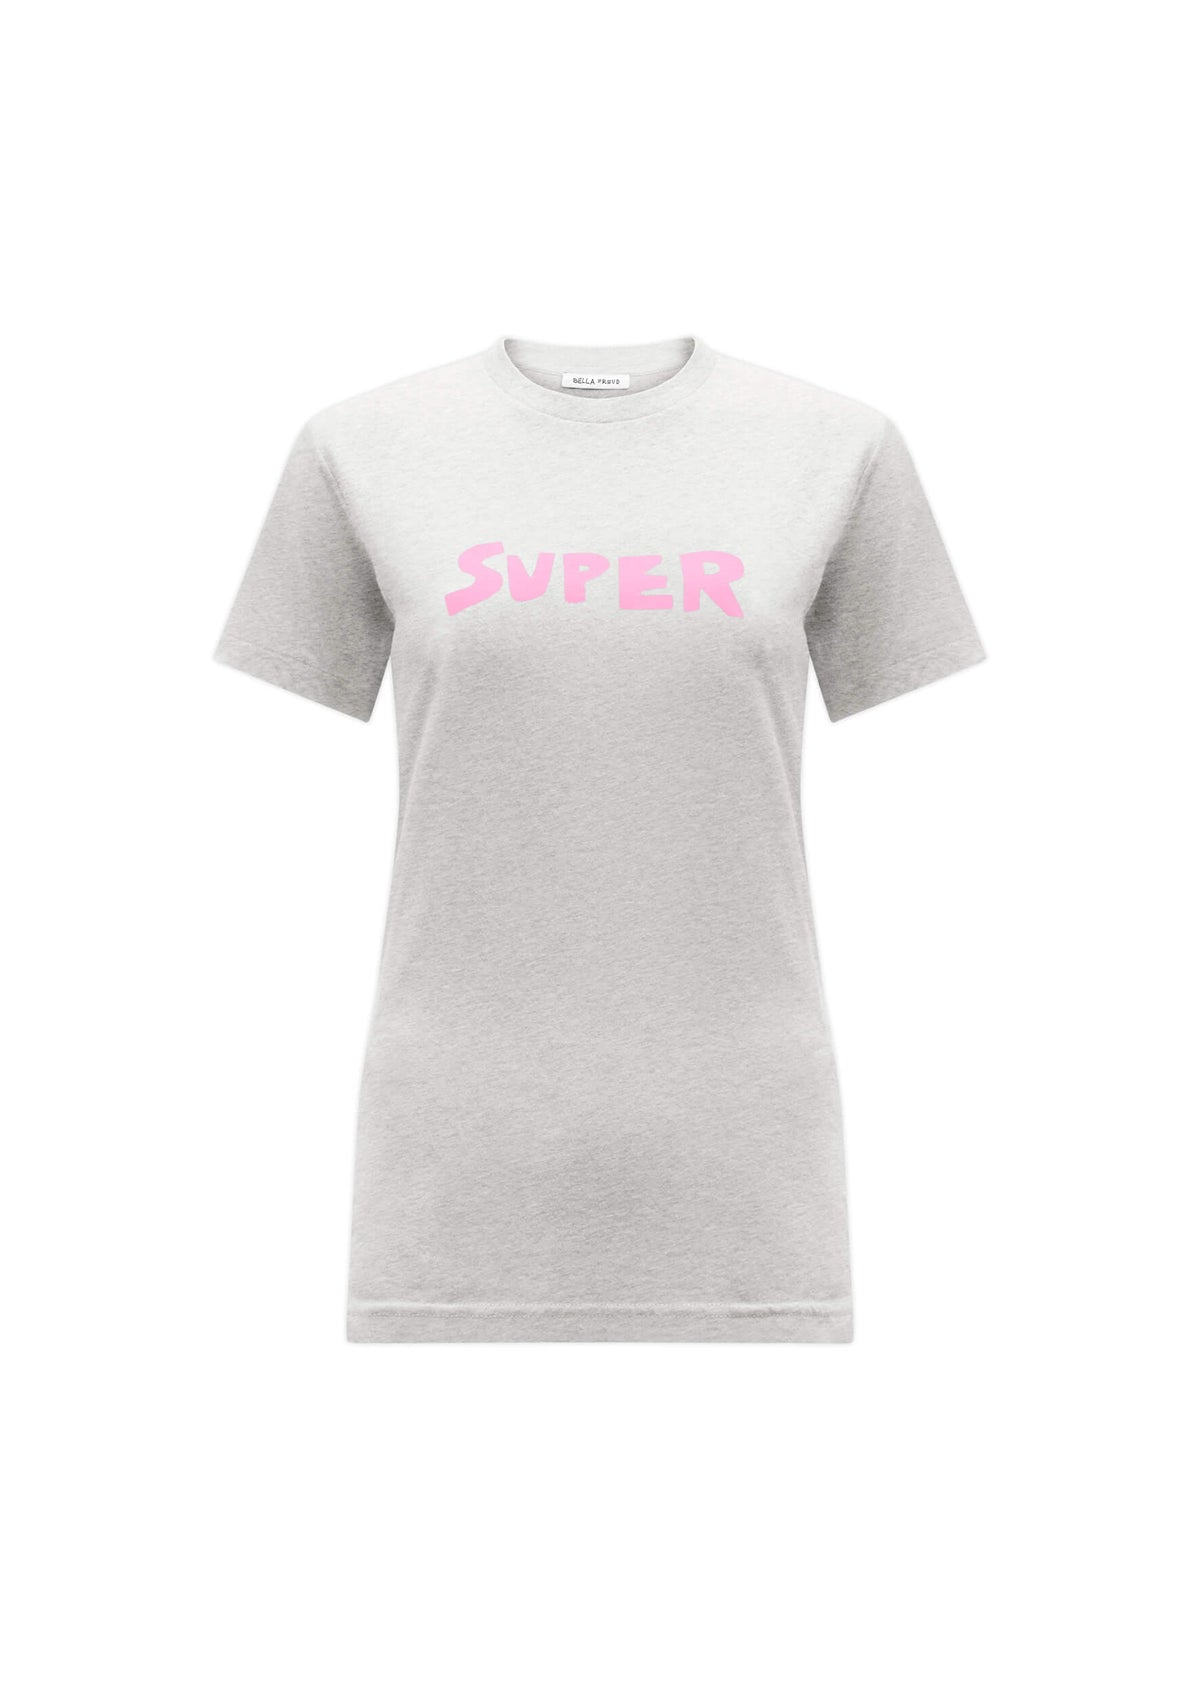 BF Super T shirt in grey marl